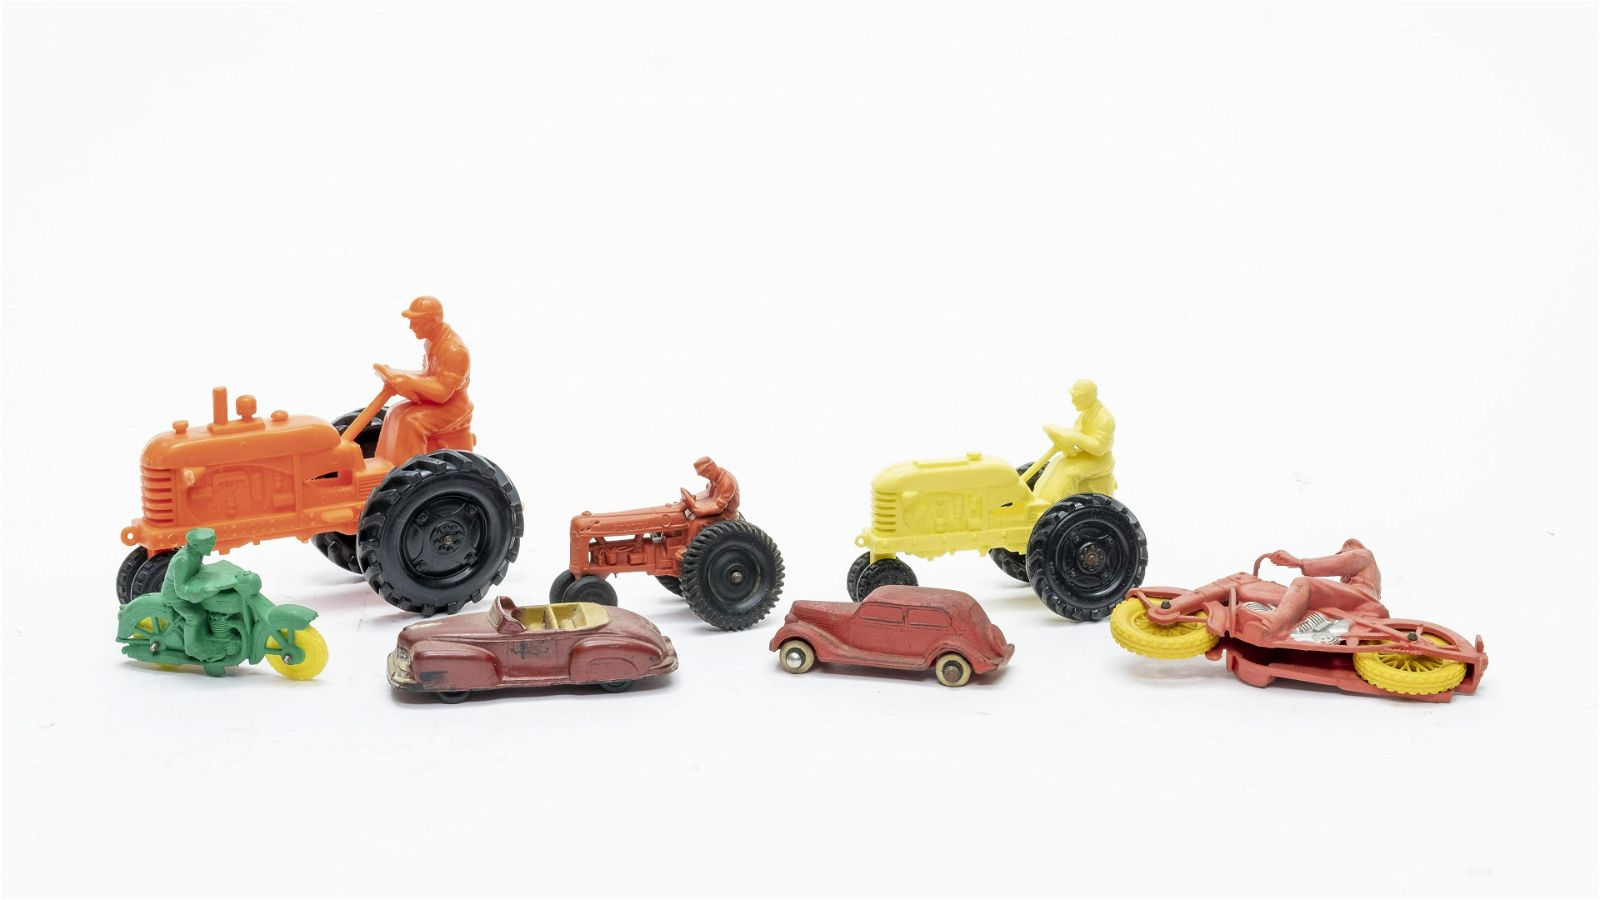 7 Toy Vehicles